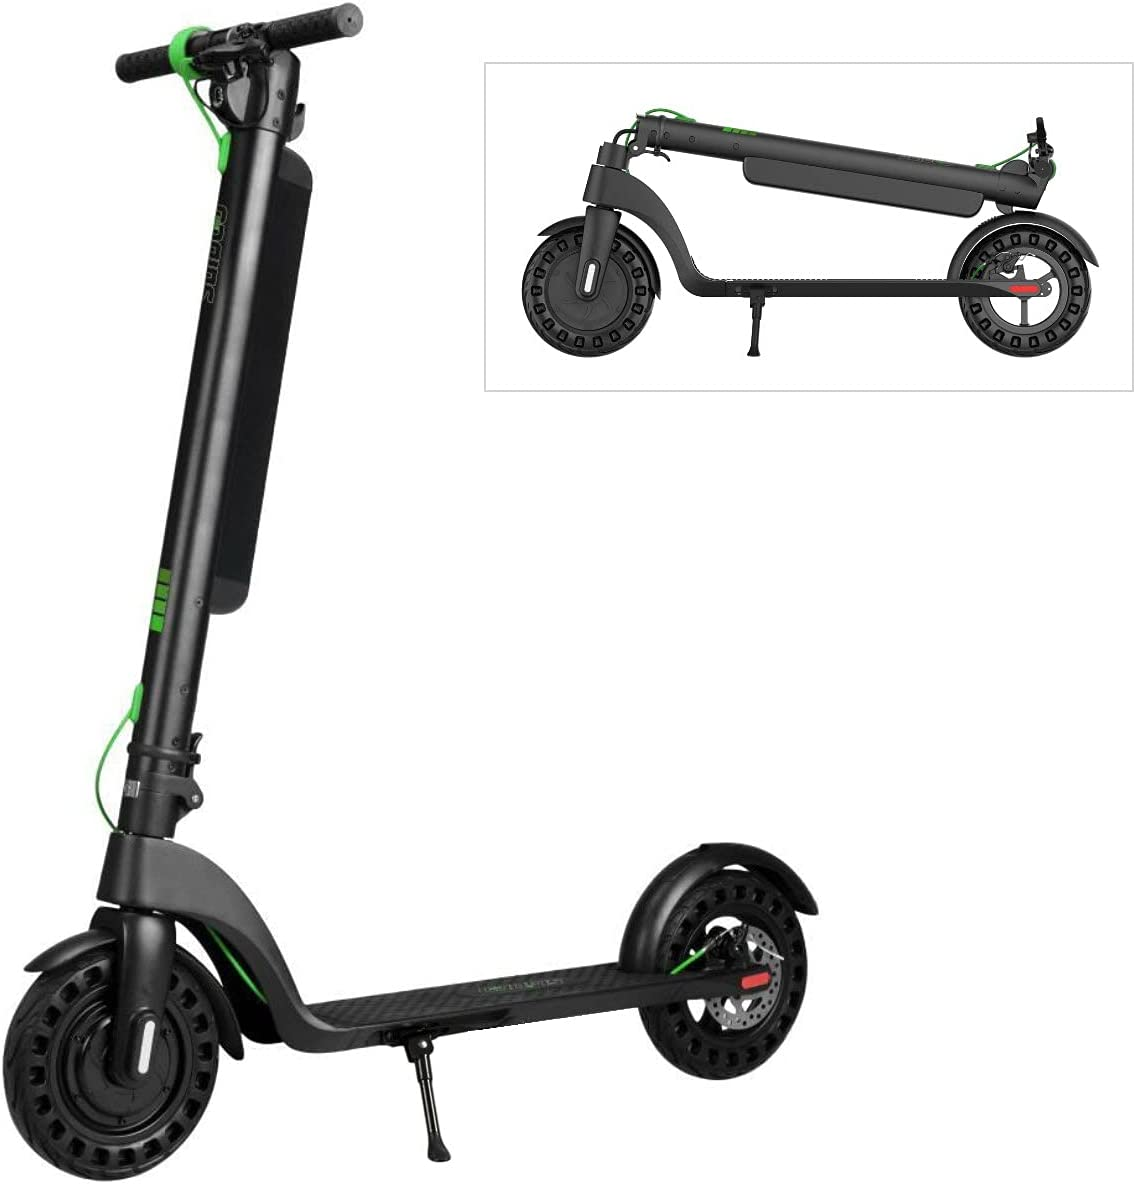 SLIDGO ELECTRIC SCOOTER